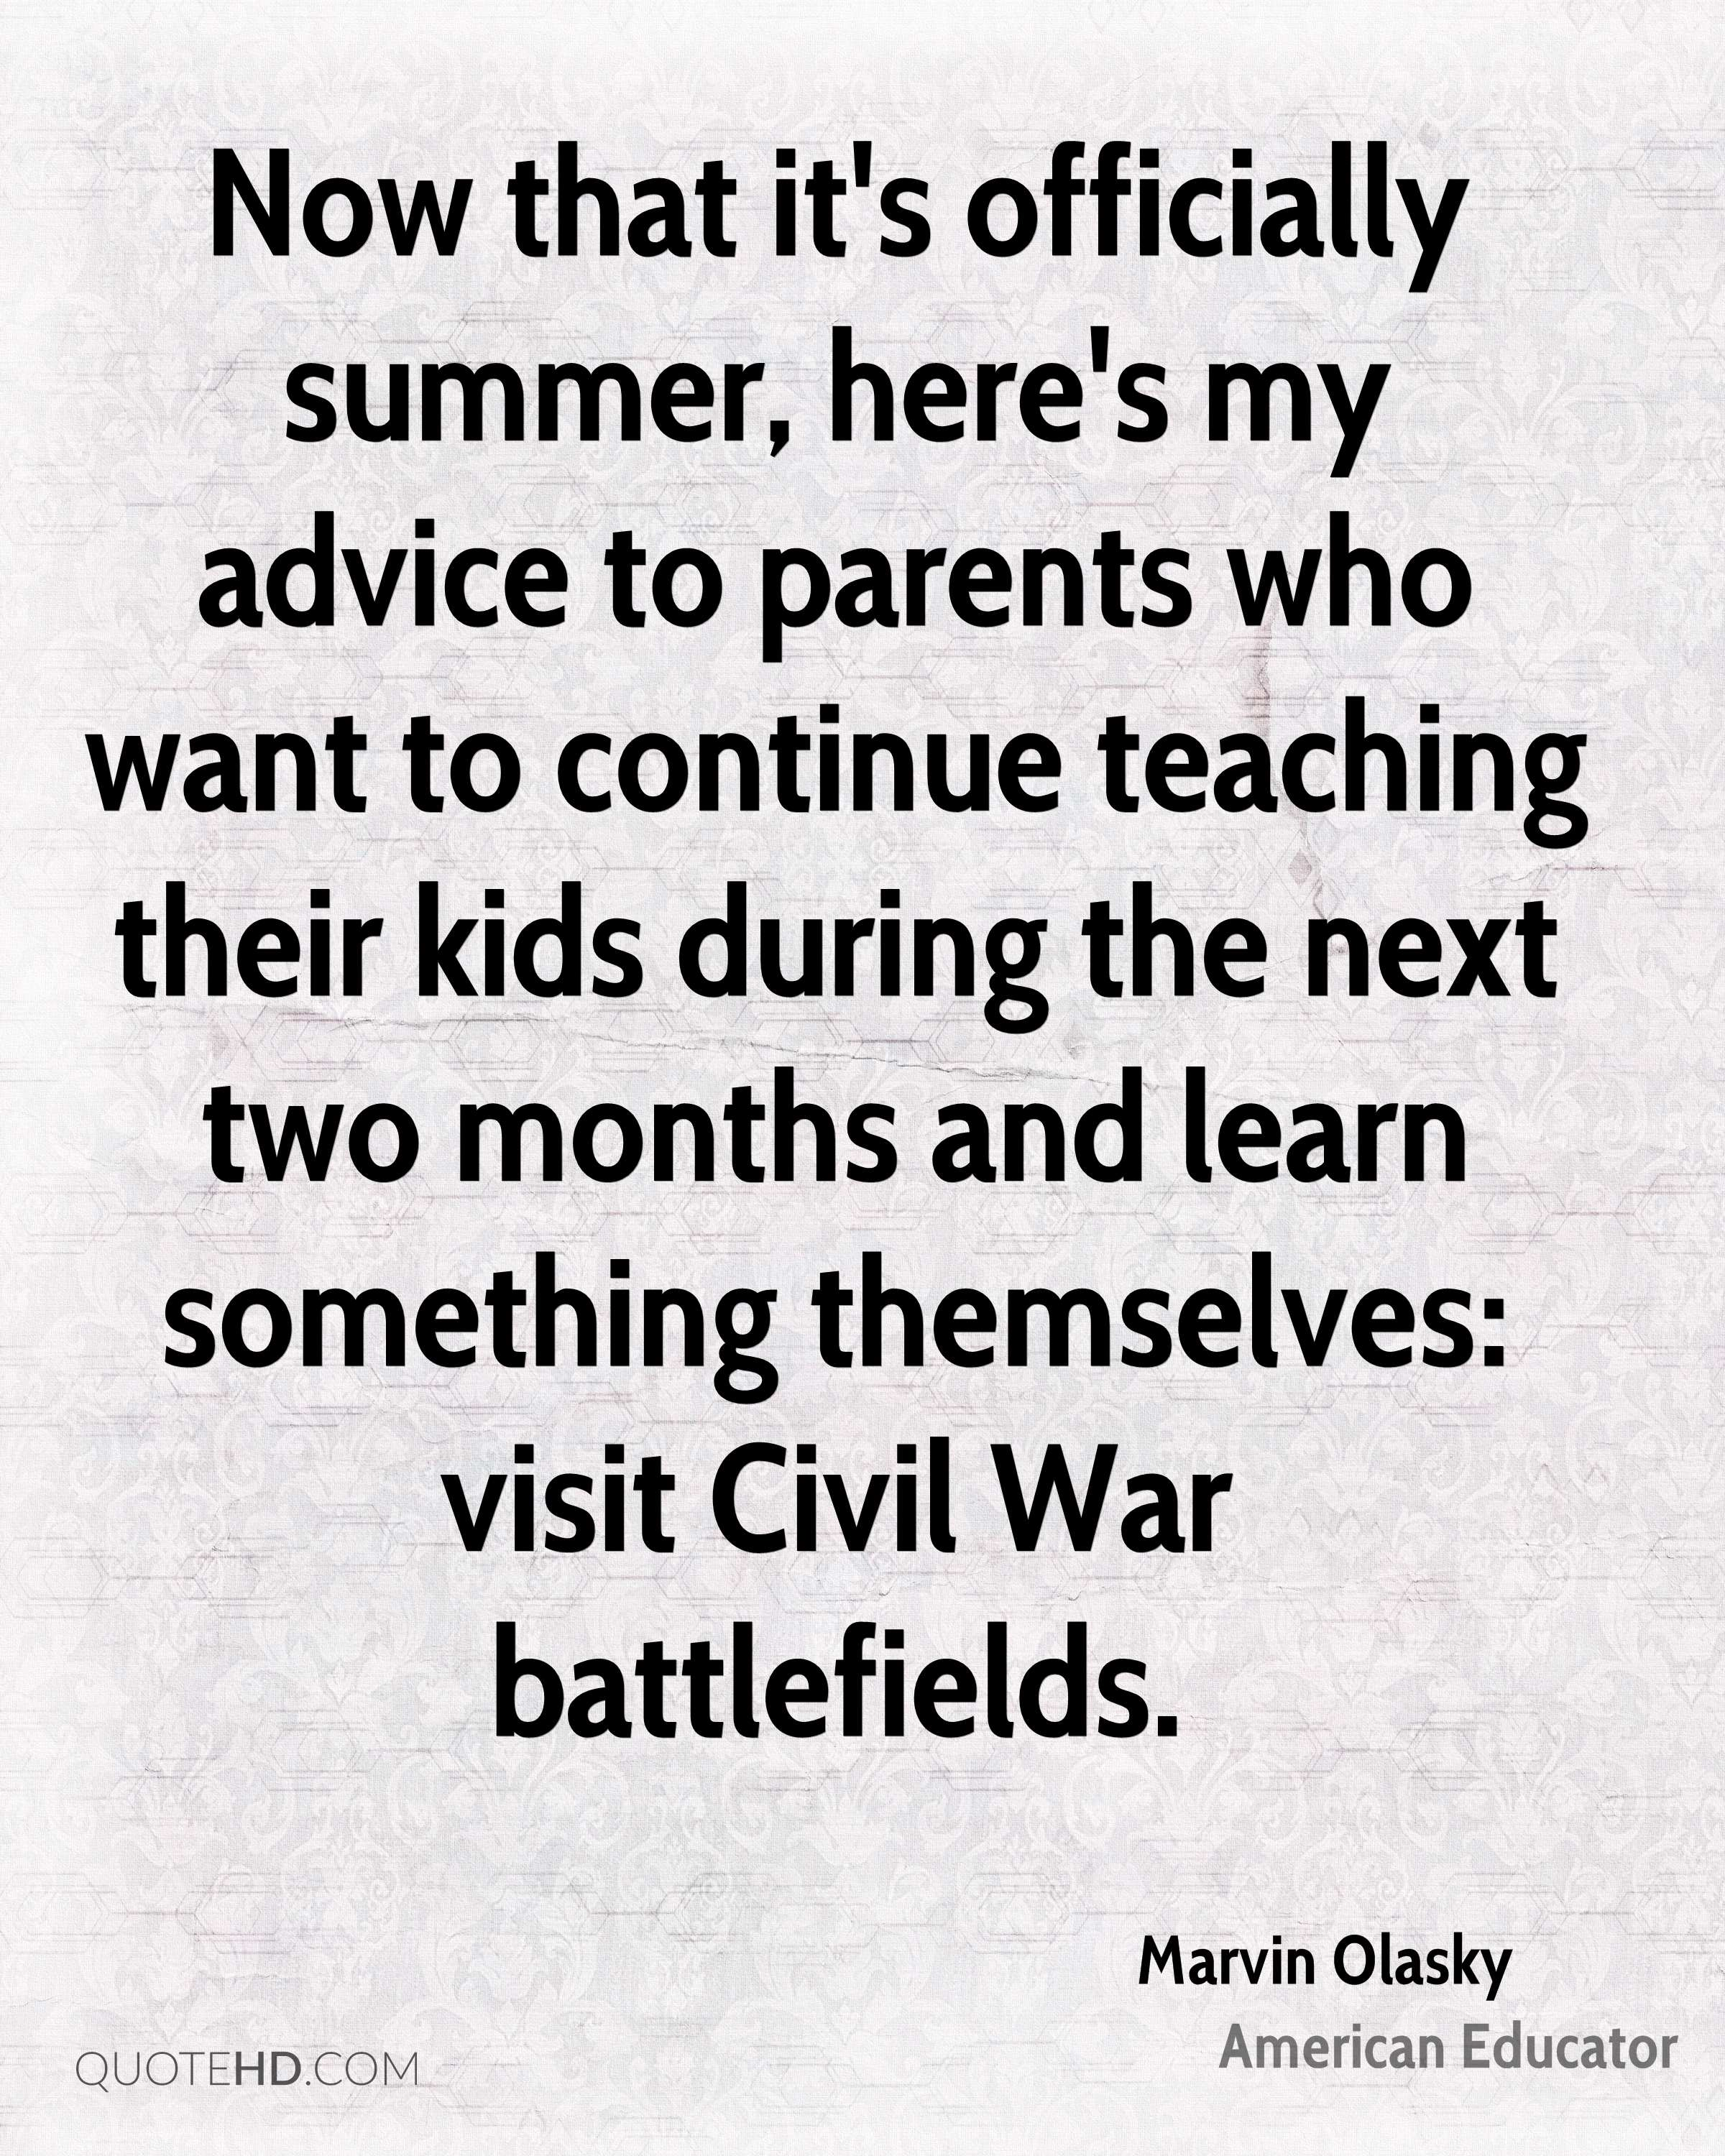 Now that it's officially summer, here's my advice to parents who want to continue teaching their kids during the next two months and learn something themselves: visit Civil War battlefields.